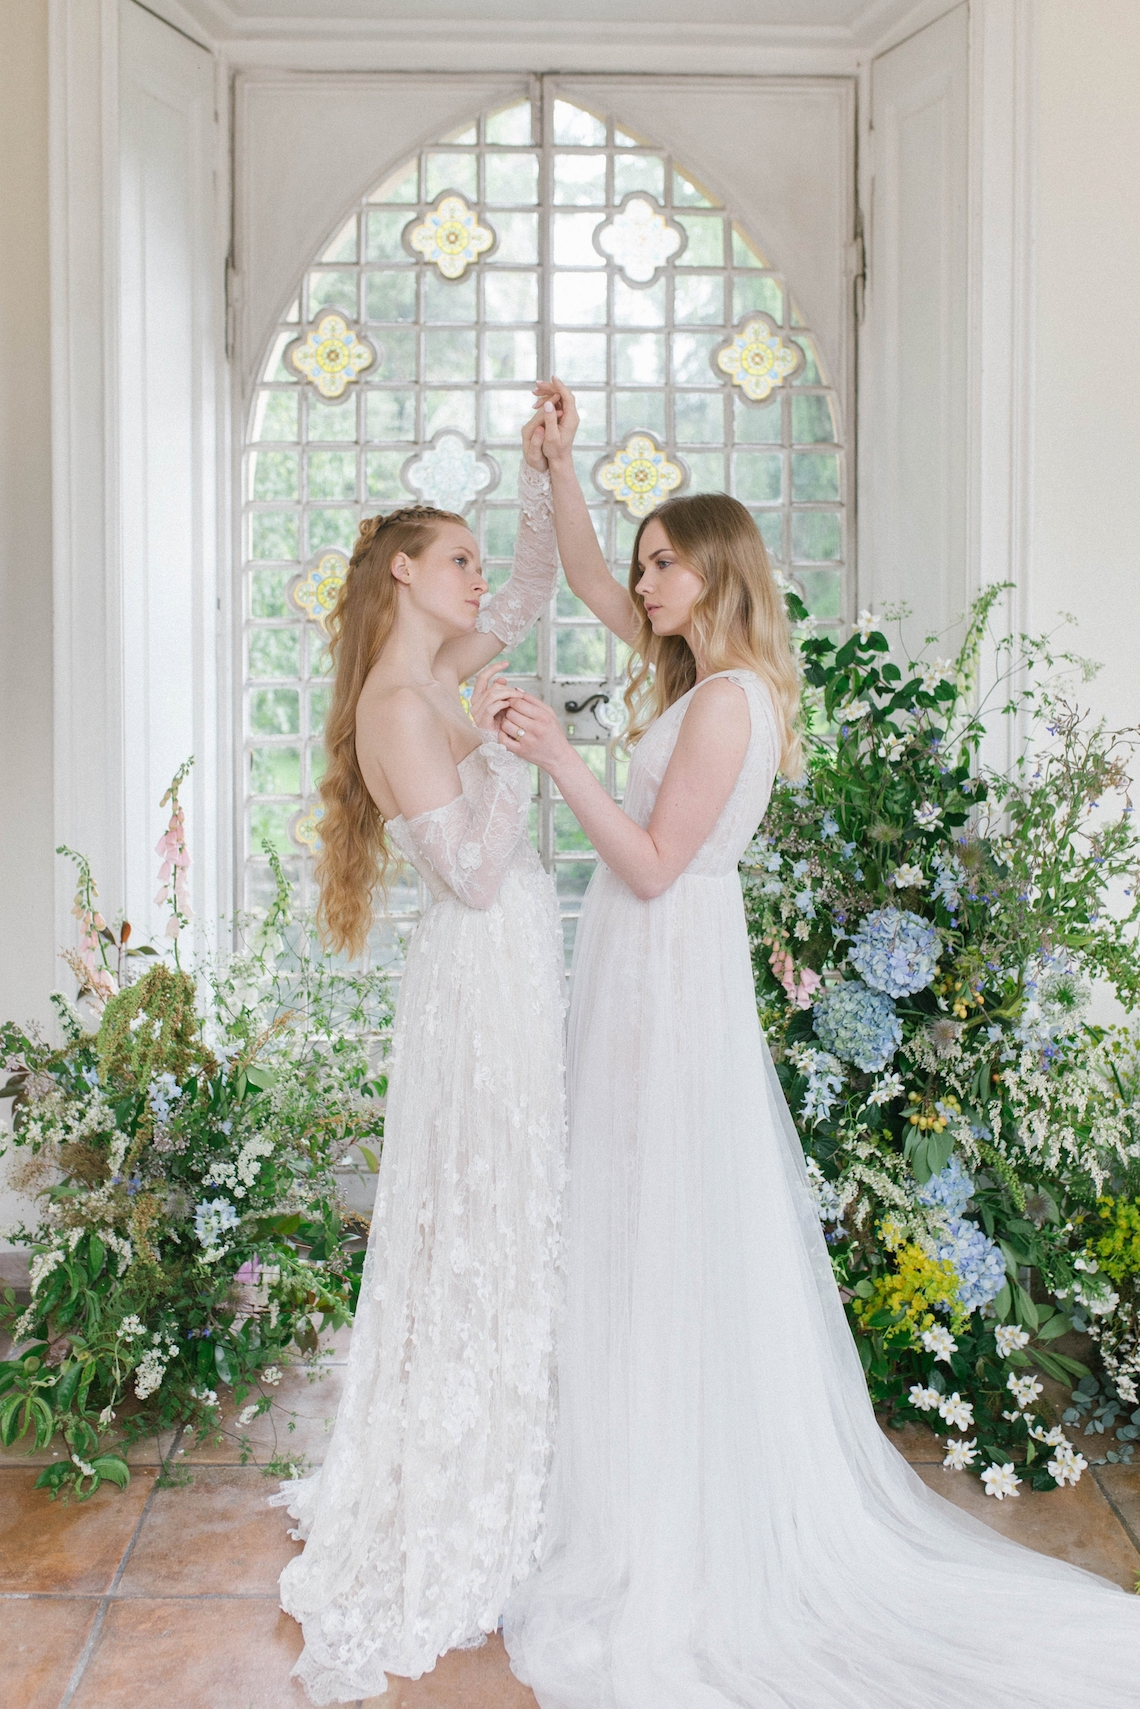 Artistic Renaissance Botticelli Same Sex Wedding Inspiration – Irene Fucci 37